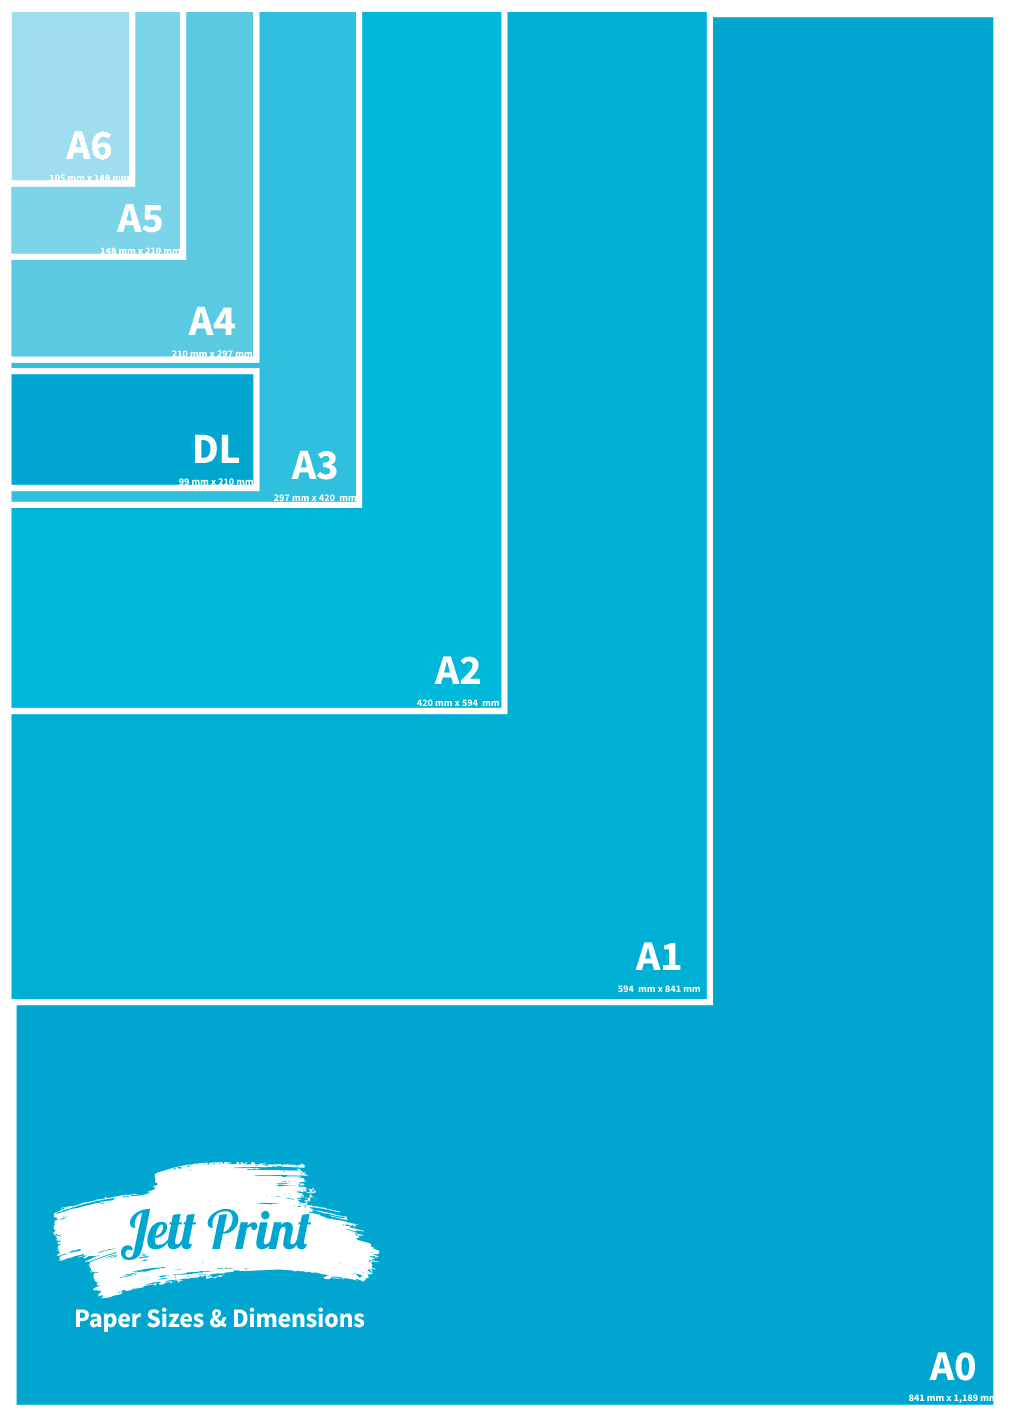 What Are The Different Paper Sizes Amp Dimensions